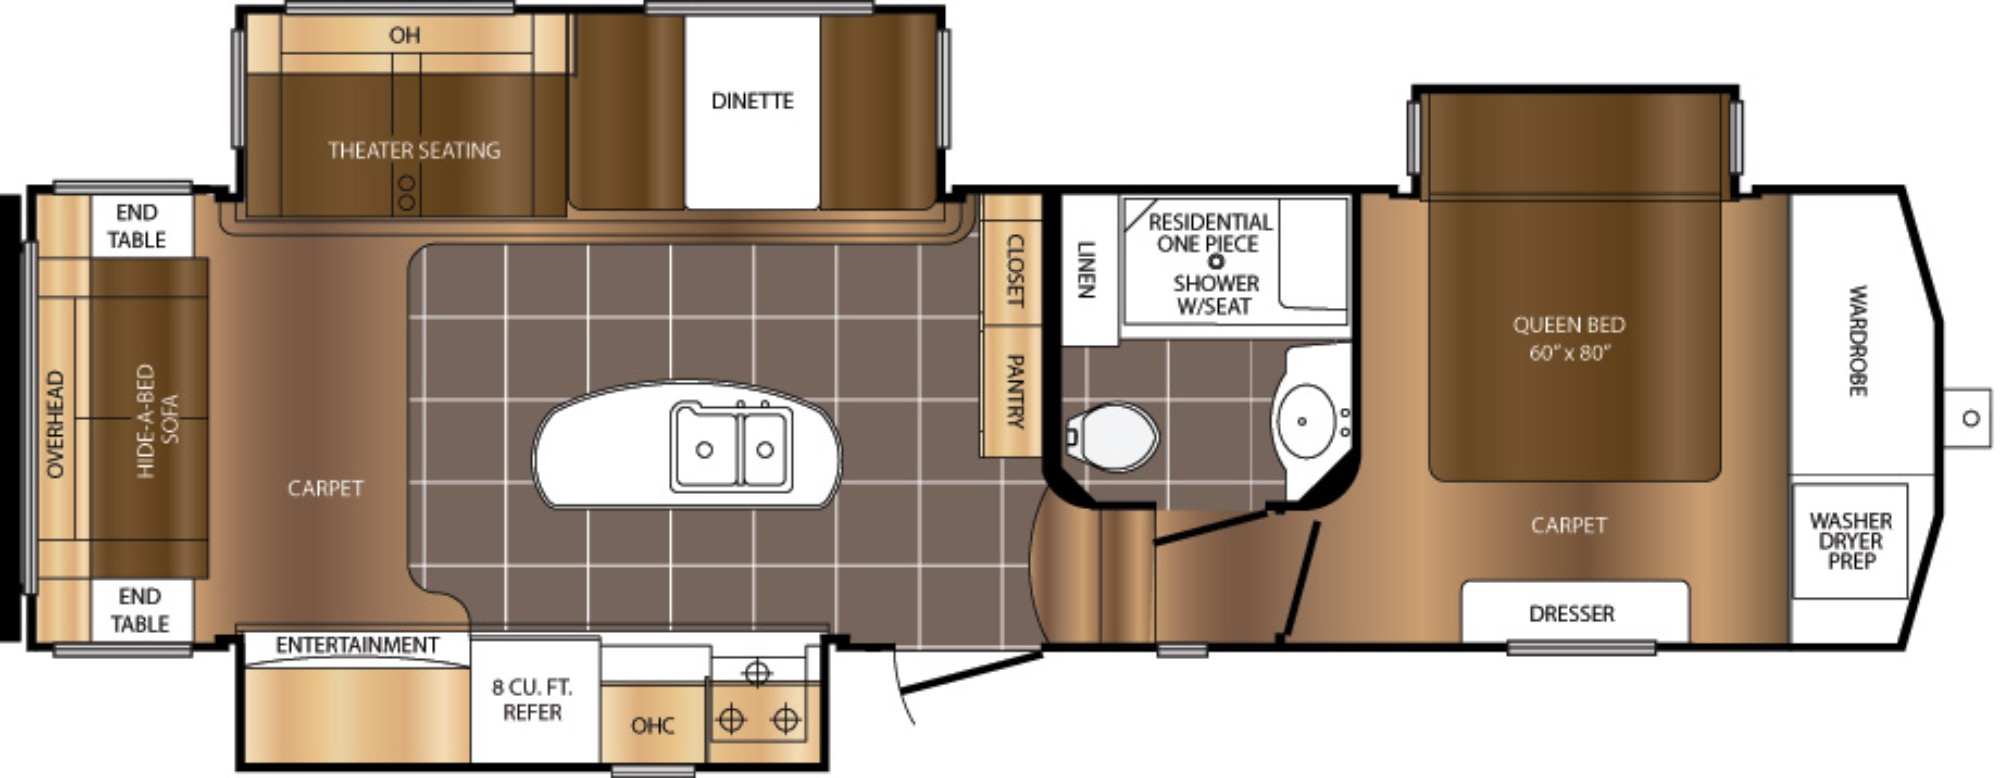 View Floor Plan for 2018 PRIME TIME CRUSADER 315RST